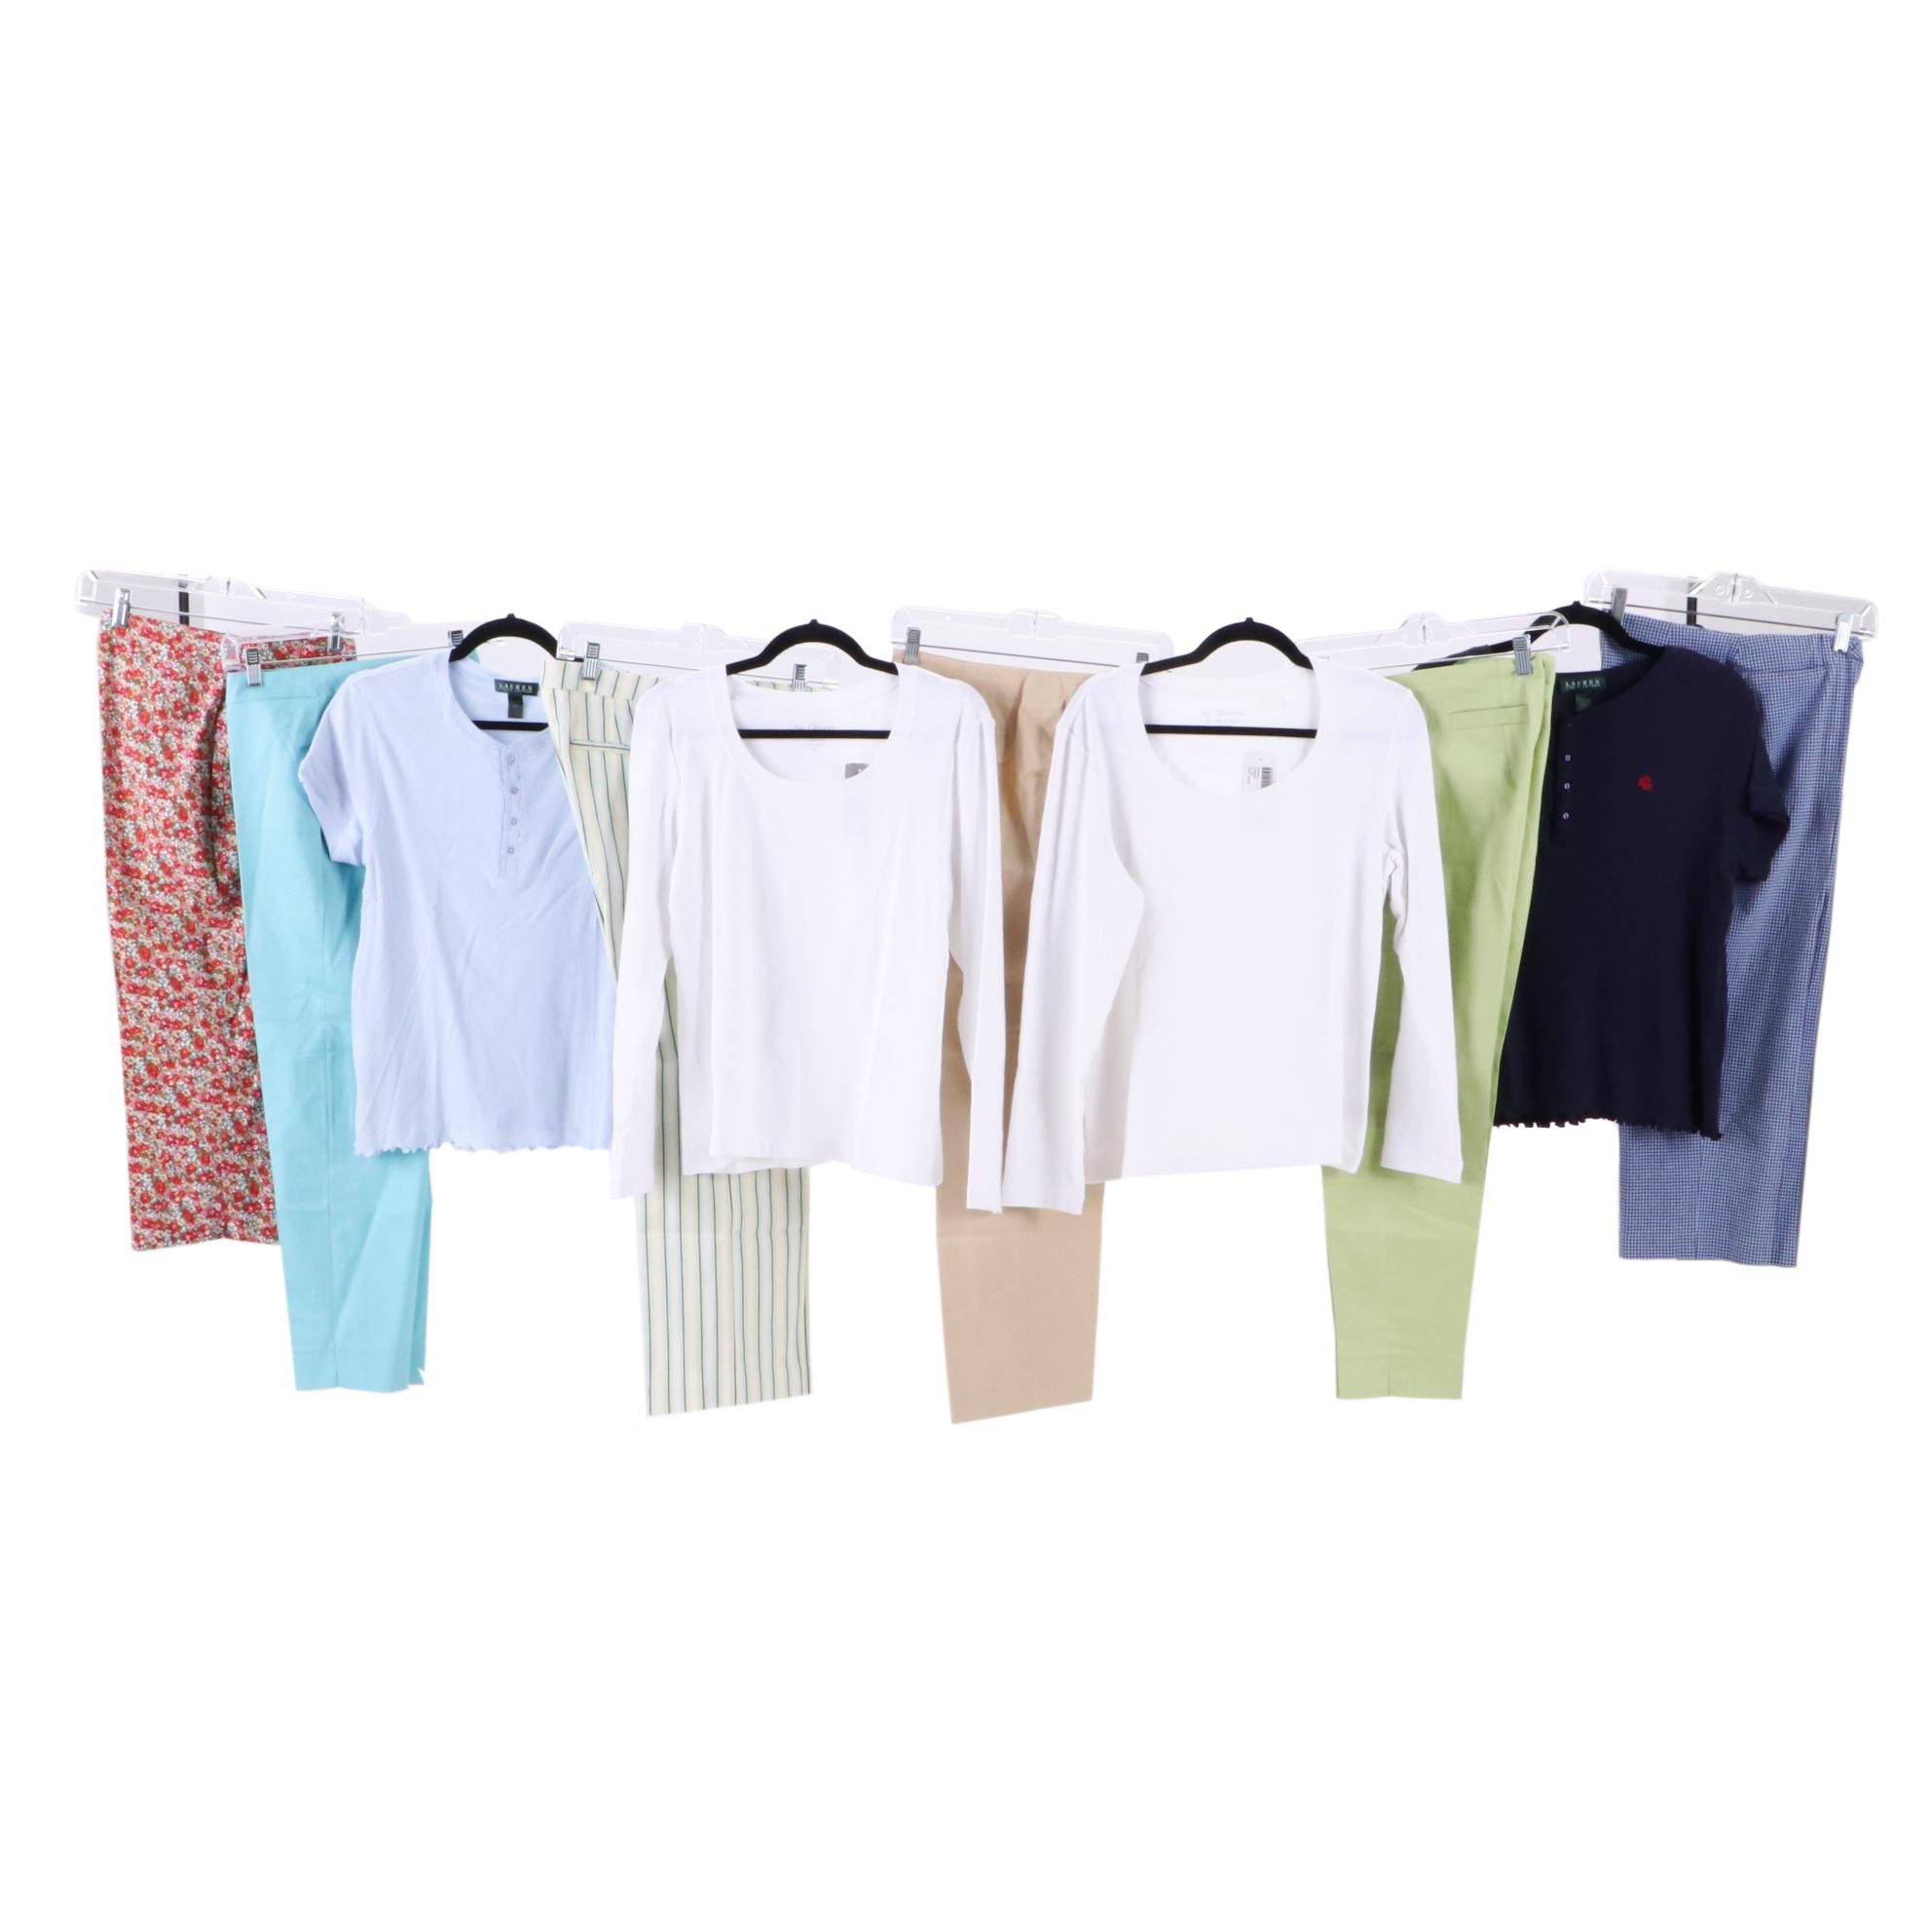 Chico's, Lauren Ralph Lauren, Signé and The Limited Pants and Shirts